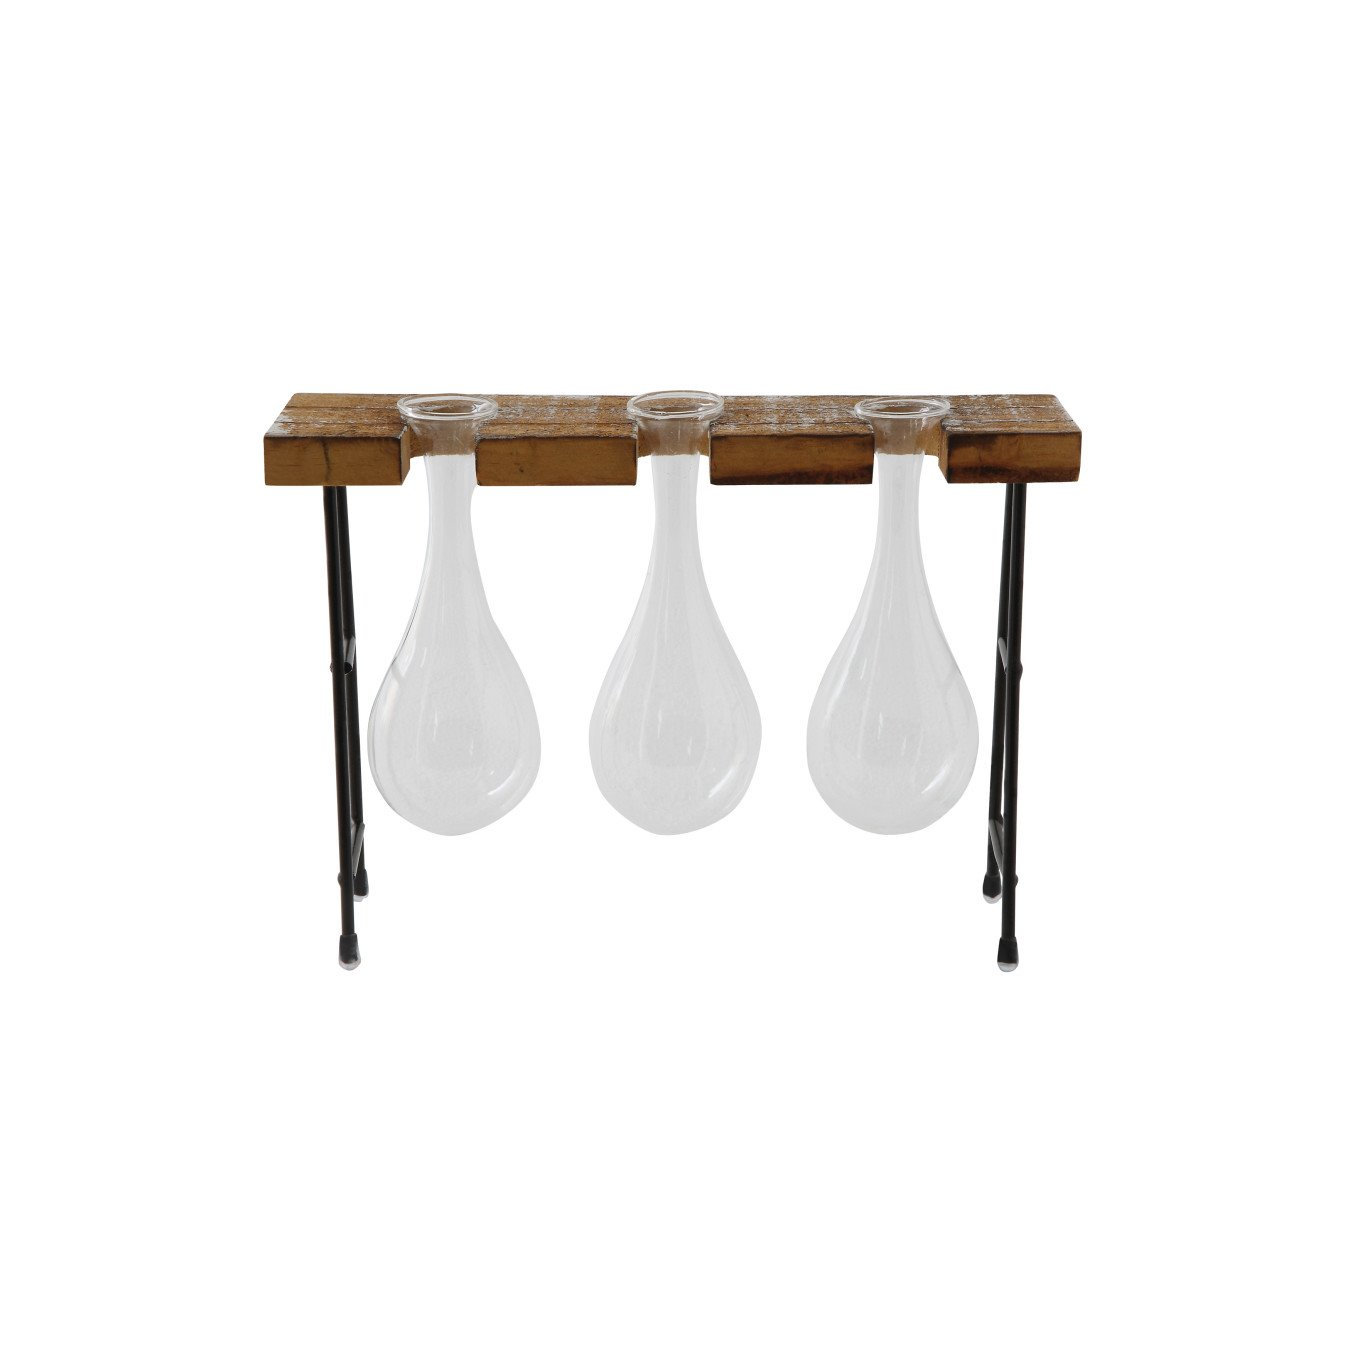 Glass Vases with Wood & Metal Stand (Set of 4 Pieces)